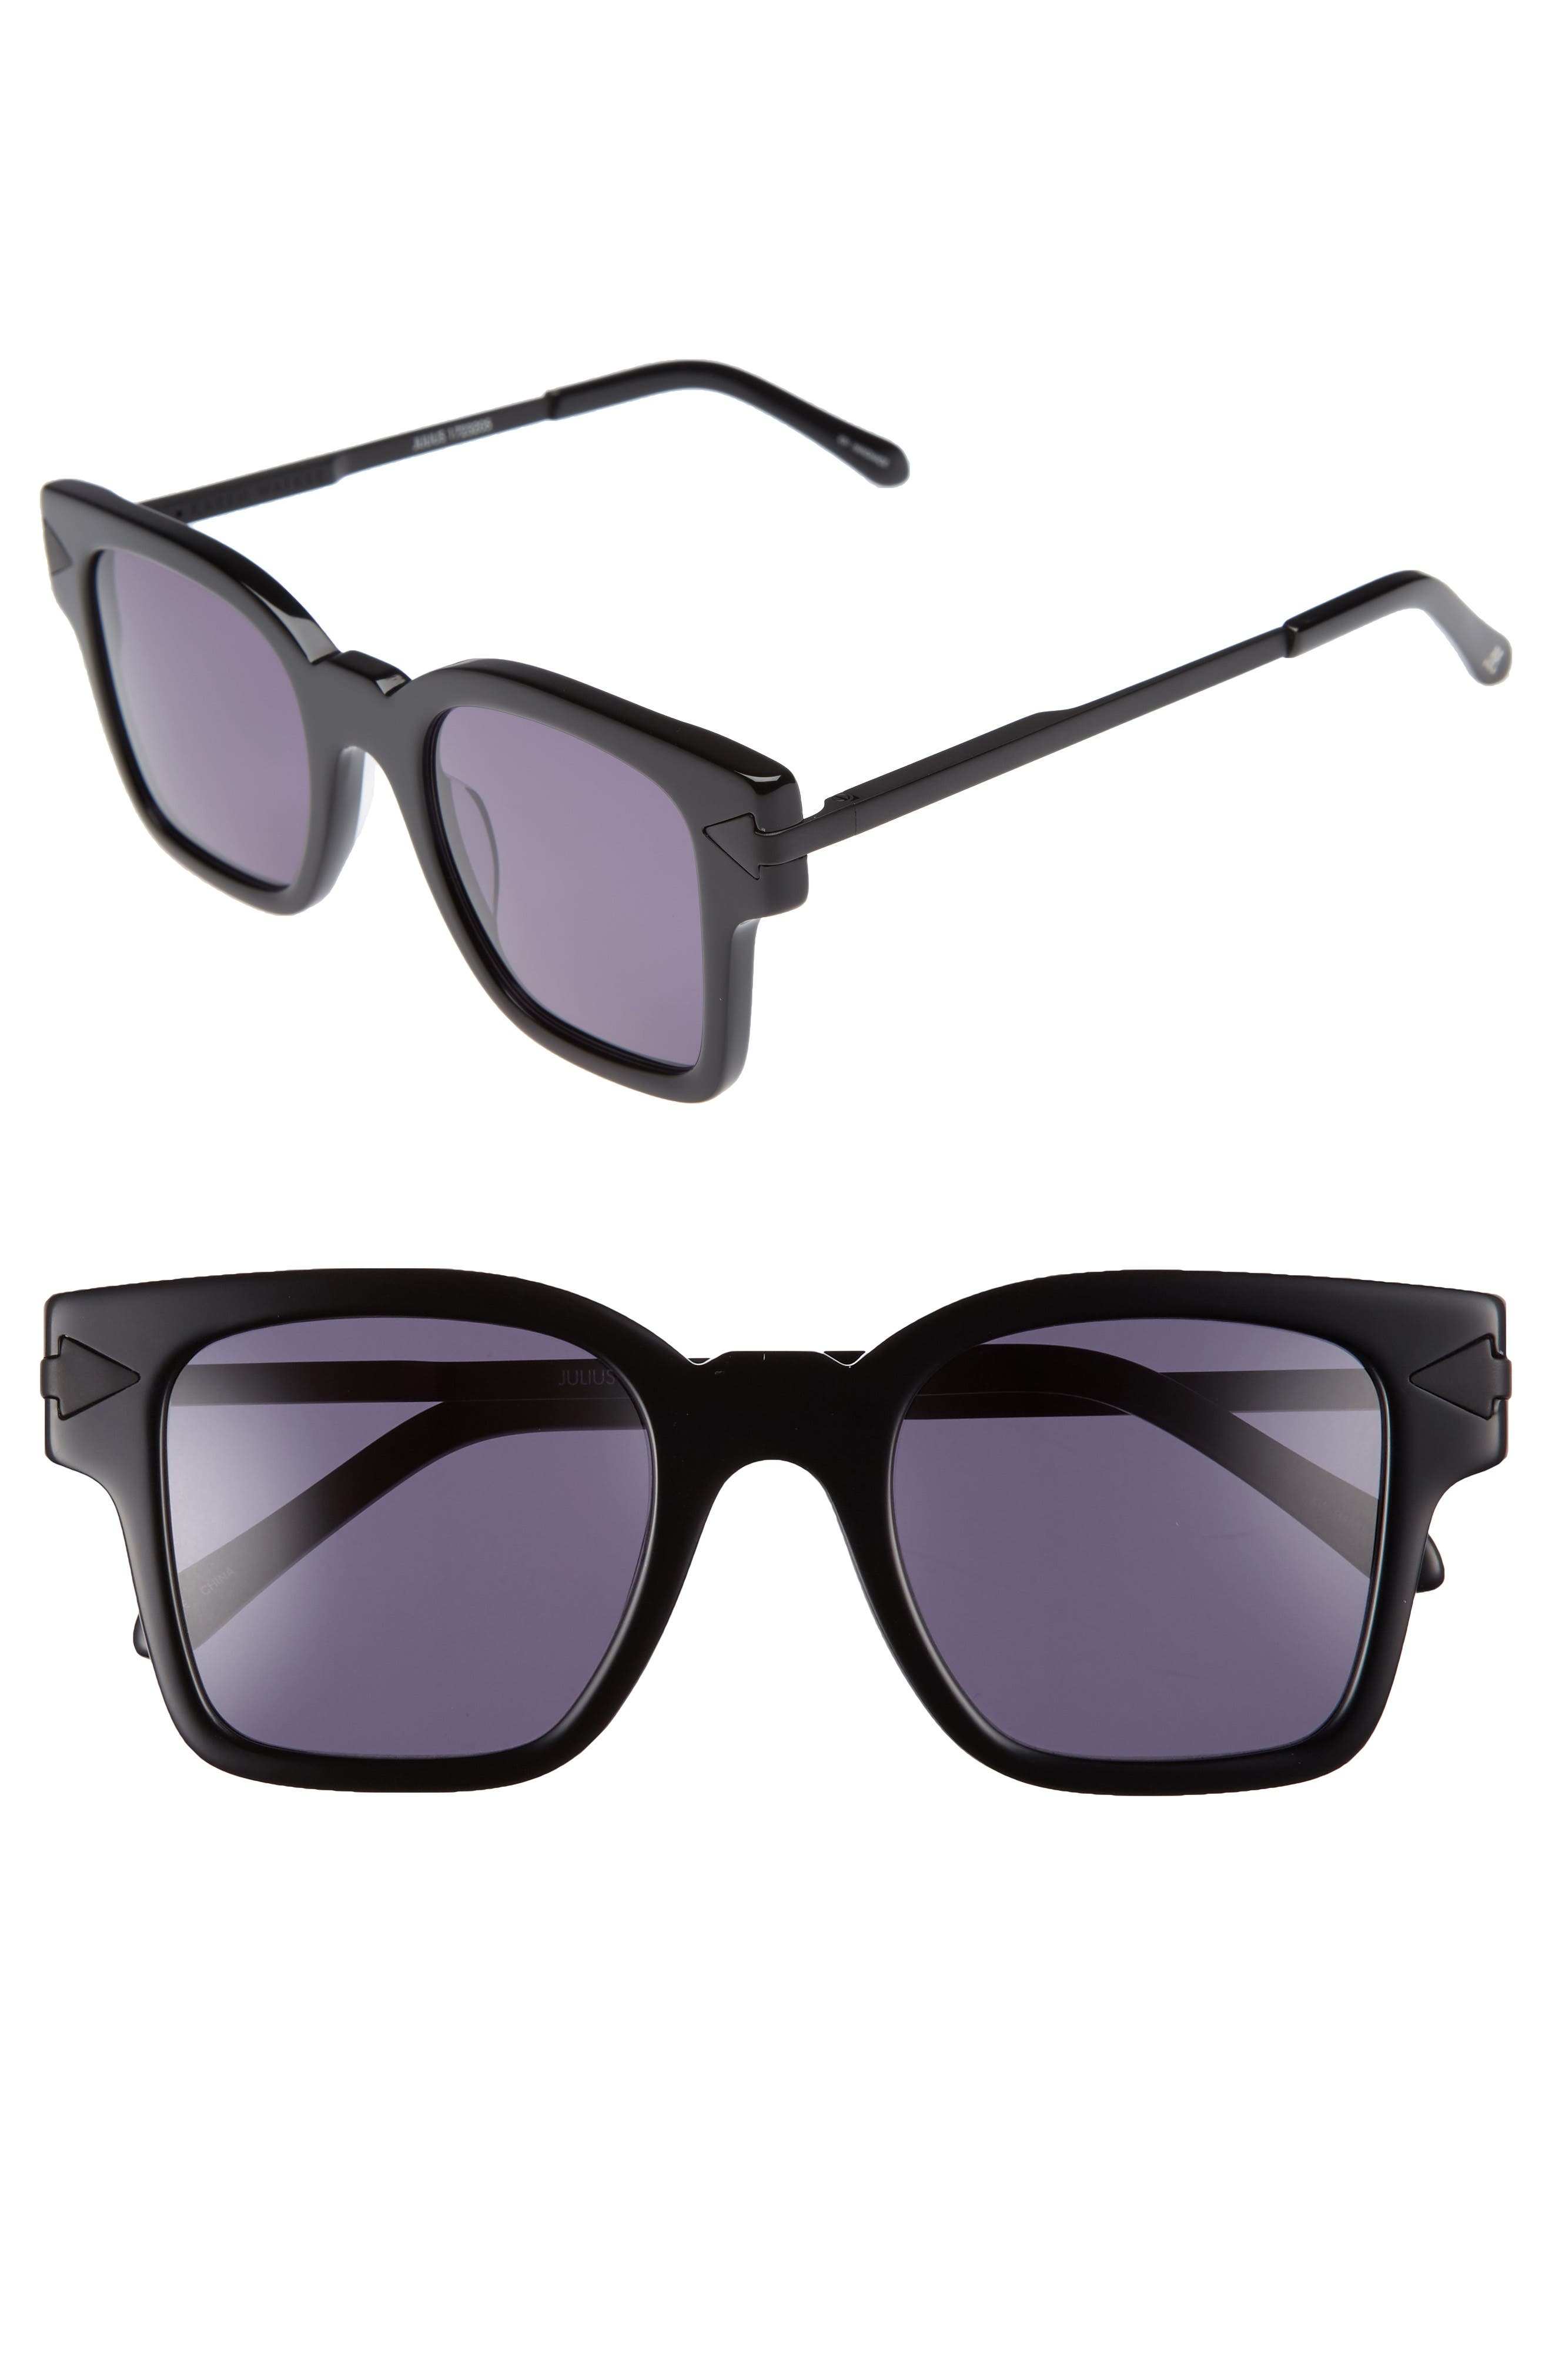 KAREN WALKER x Monumental Julius 49mm Square Sunglasses